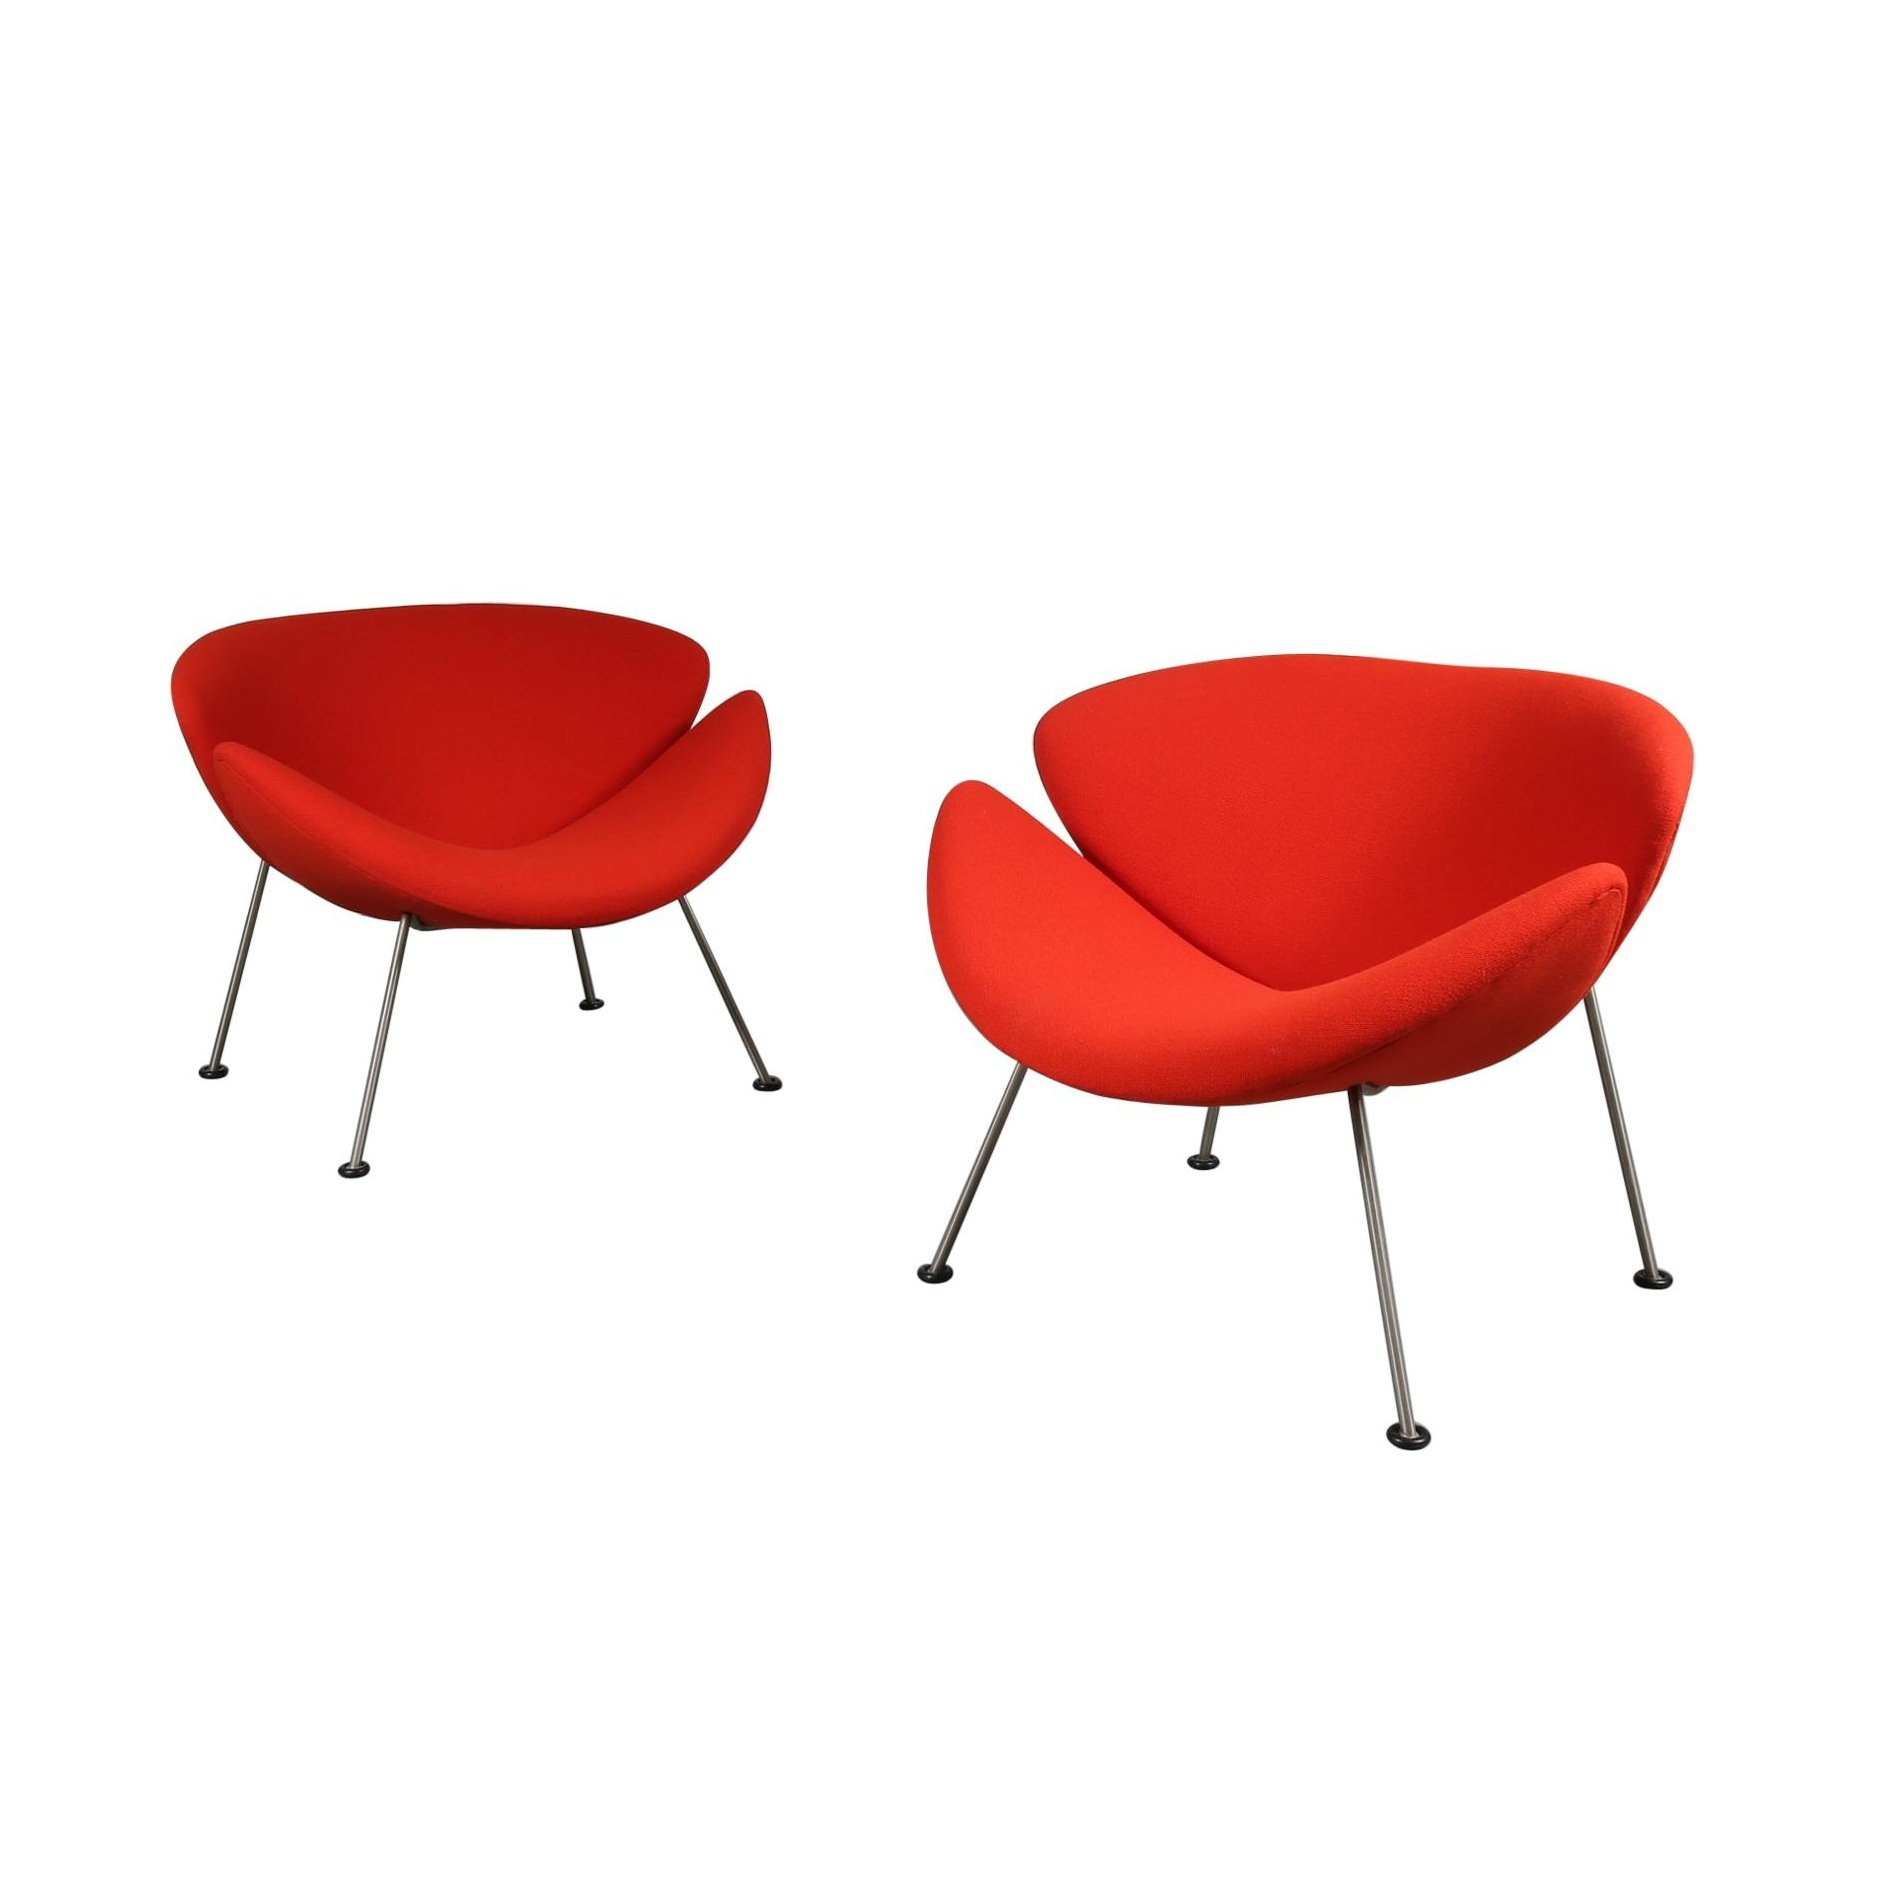 Artifort Fauteuil Orange Slice.Pair Of Pierre Paulin First Edition Orange Slice Chairs For Artifort 1950s